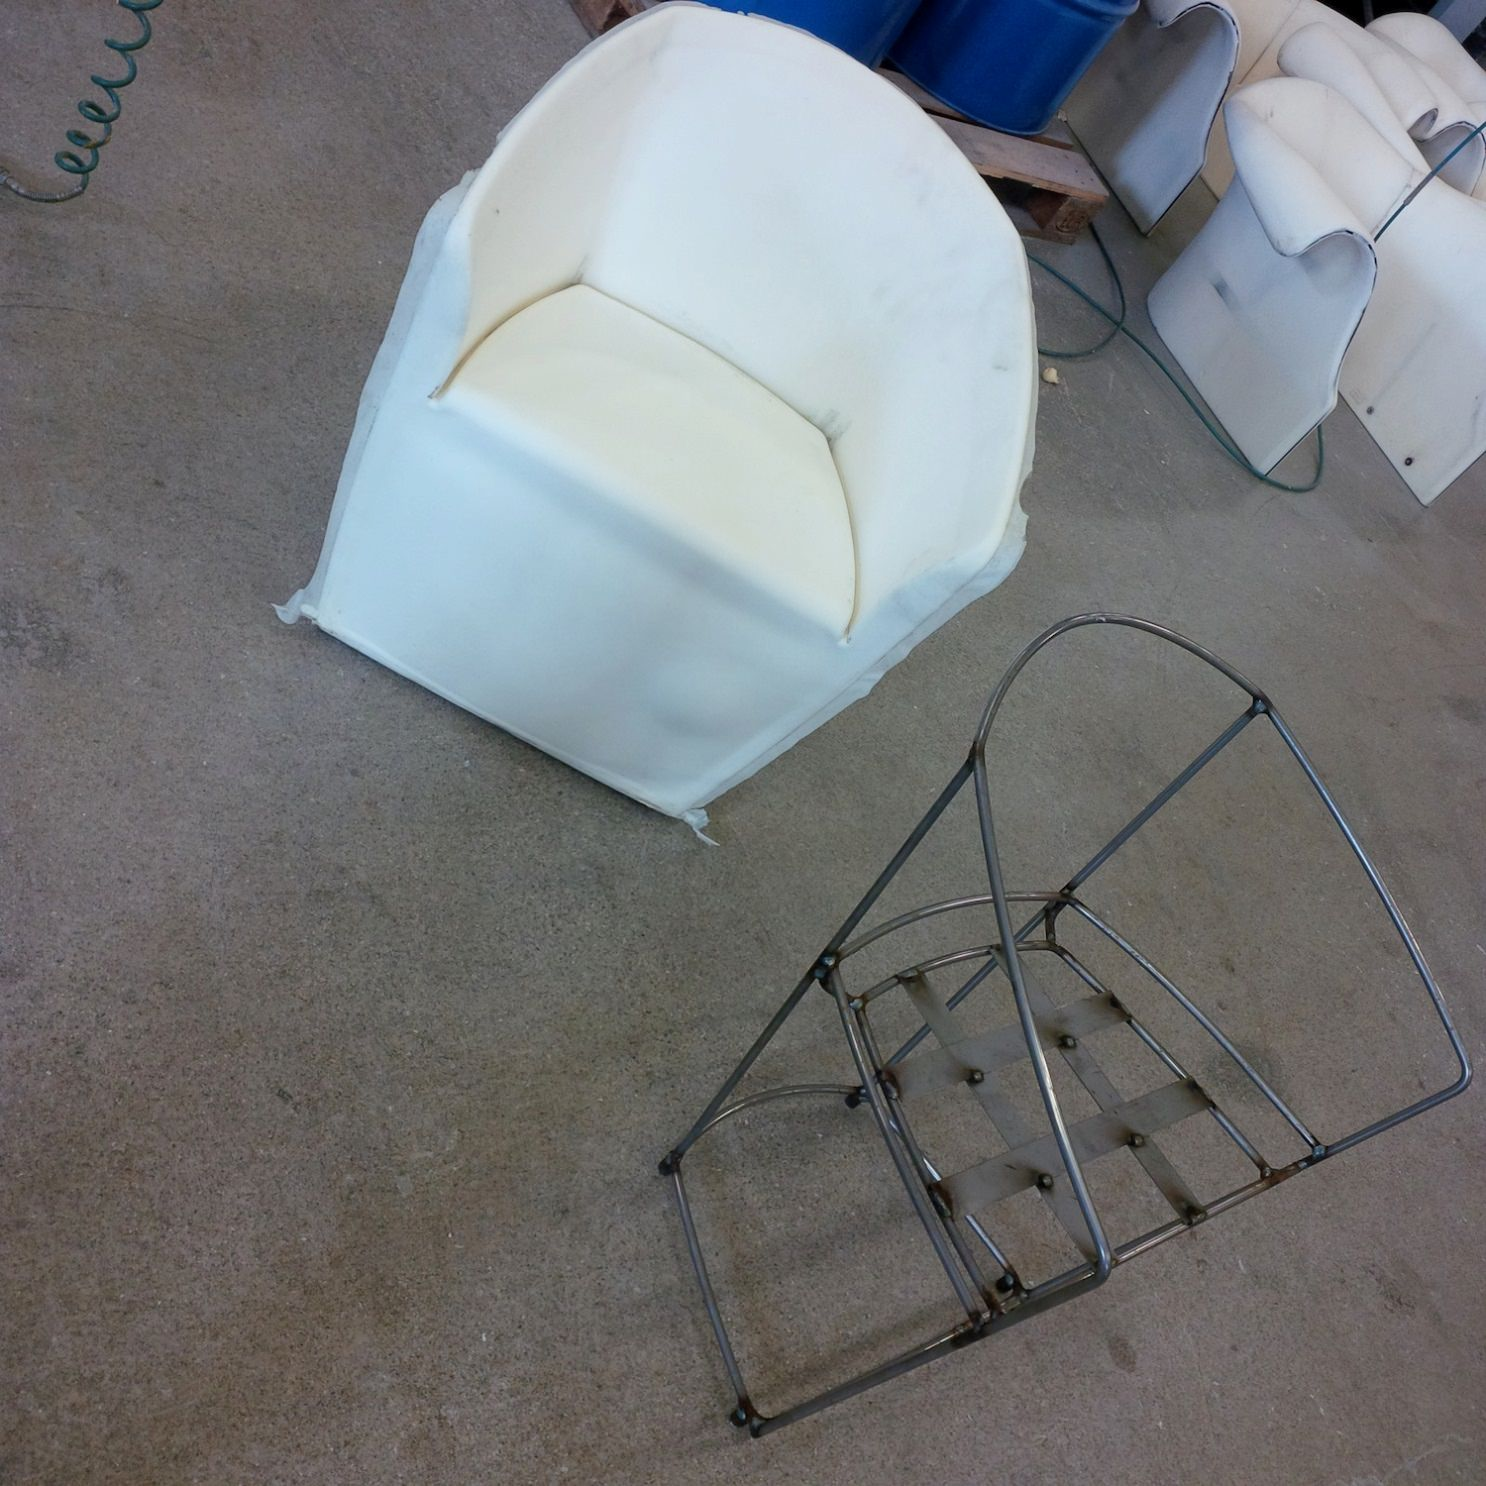 Metal frame of chair that will be created and manufactured